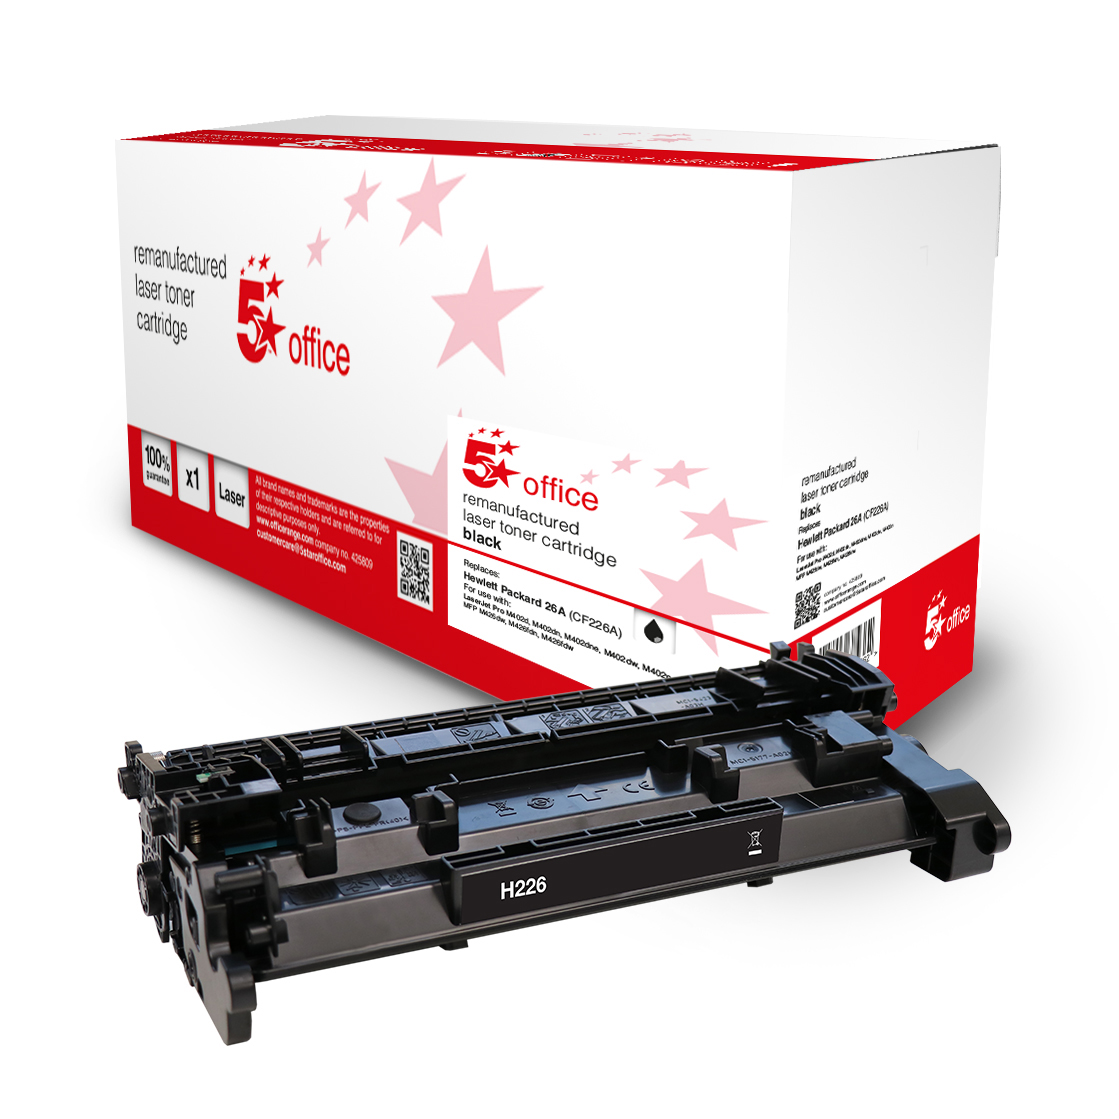 Laser Toner Cartridges 5 Star Office Remanufactured Toner Cartridge Page Life Black 3100pp HP 26A CF226A Alternative